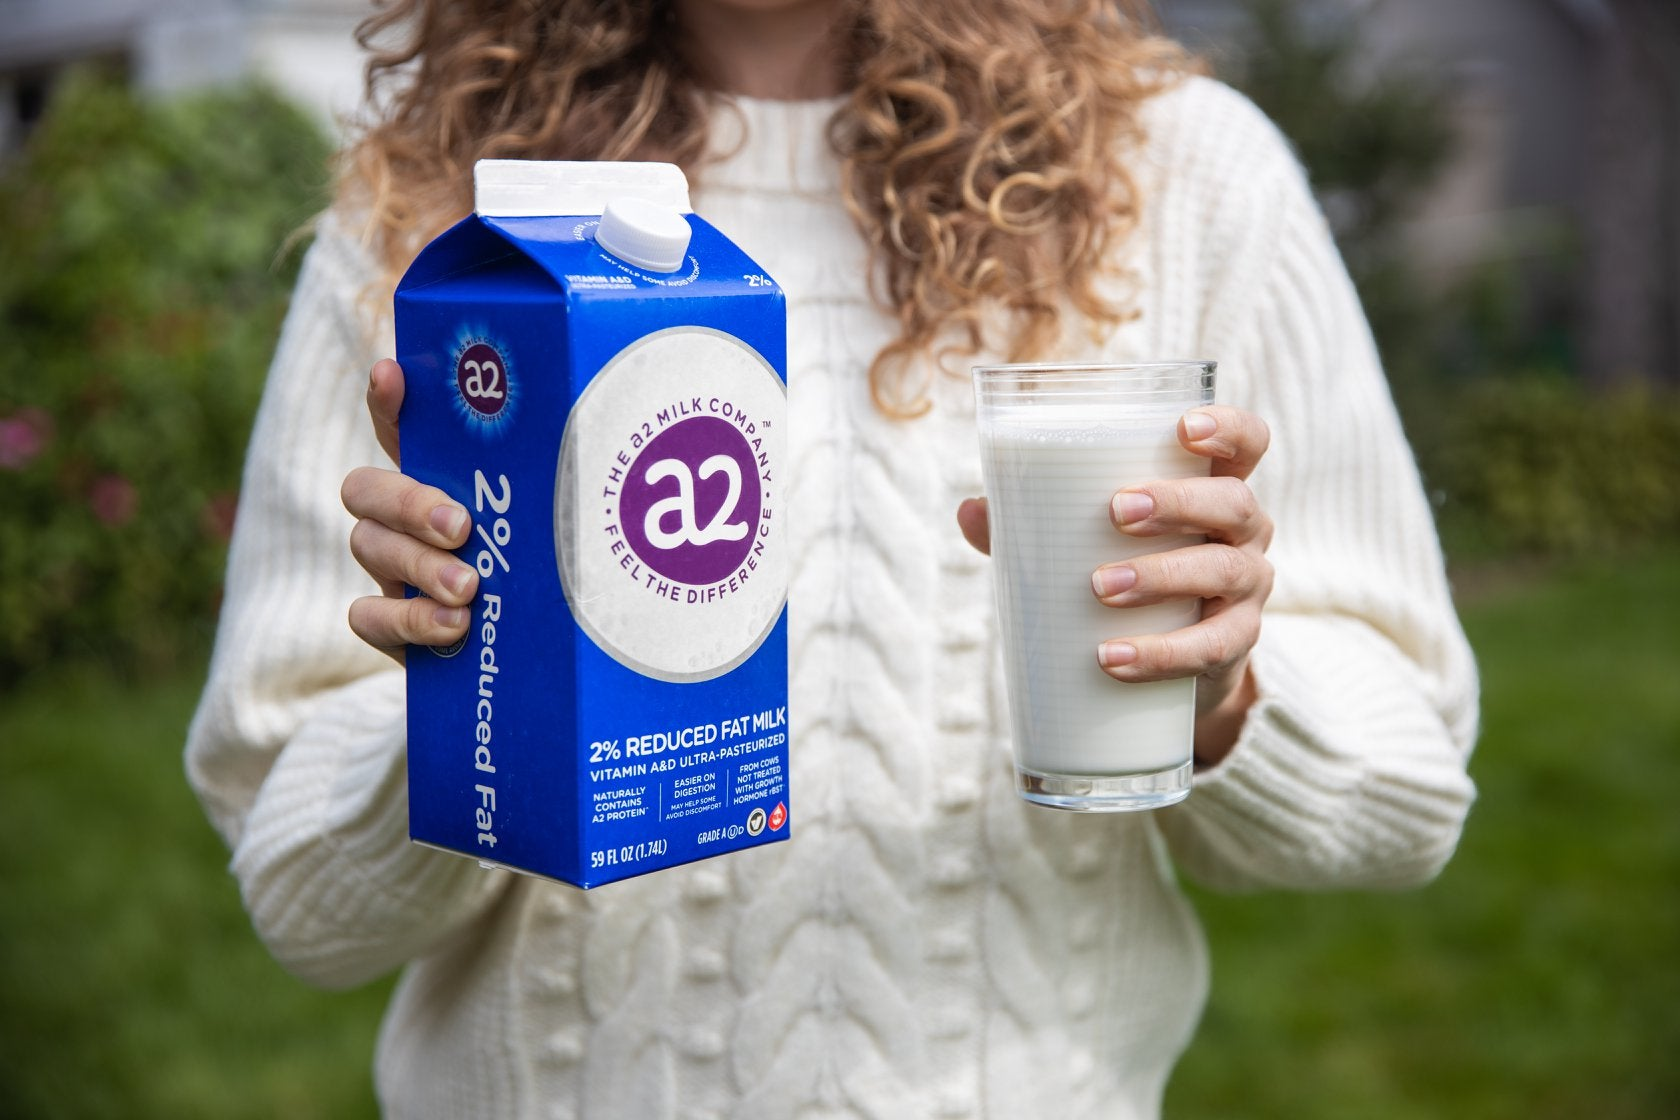 Why does a2 Milk® have a longer shelf life?